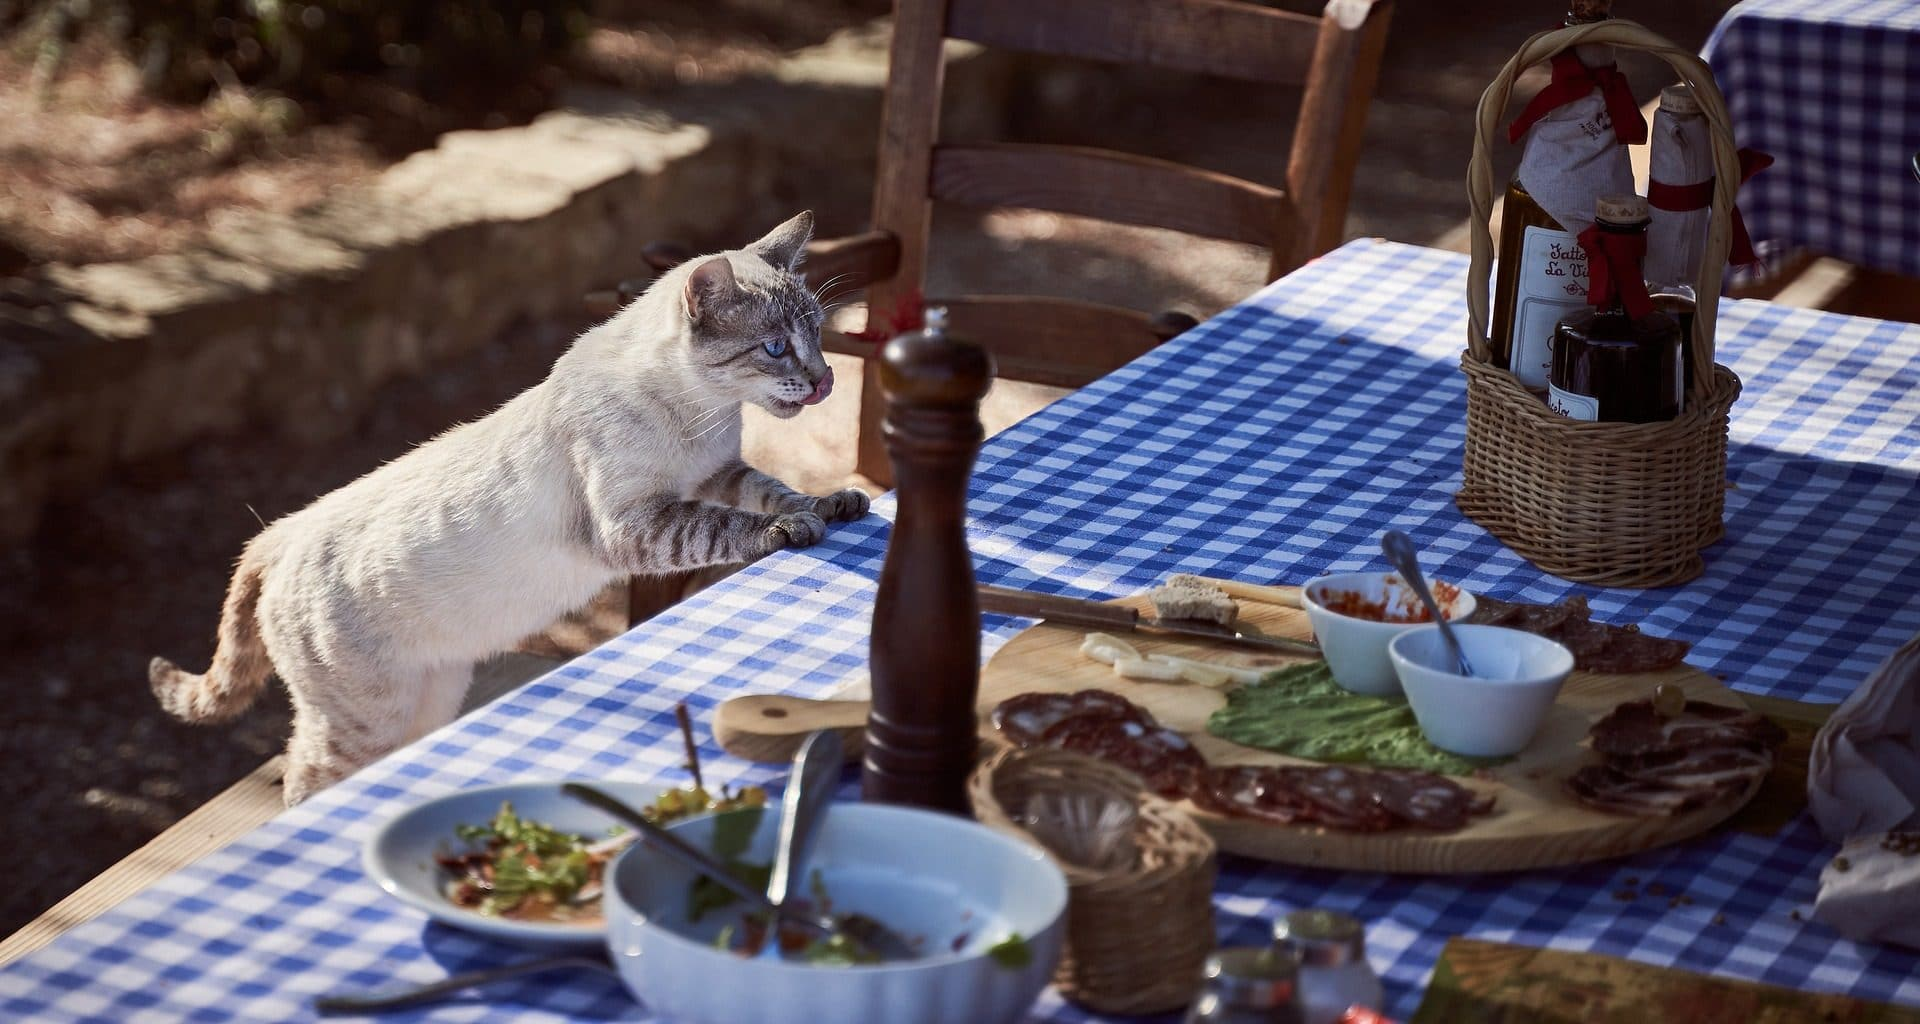 What Human Food Can Cats Eat - Featured Image